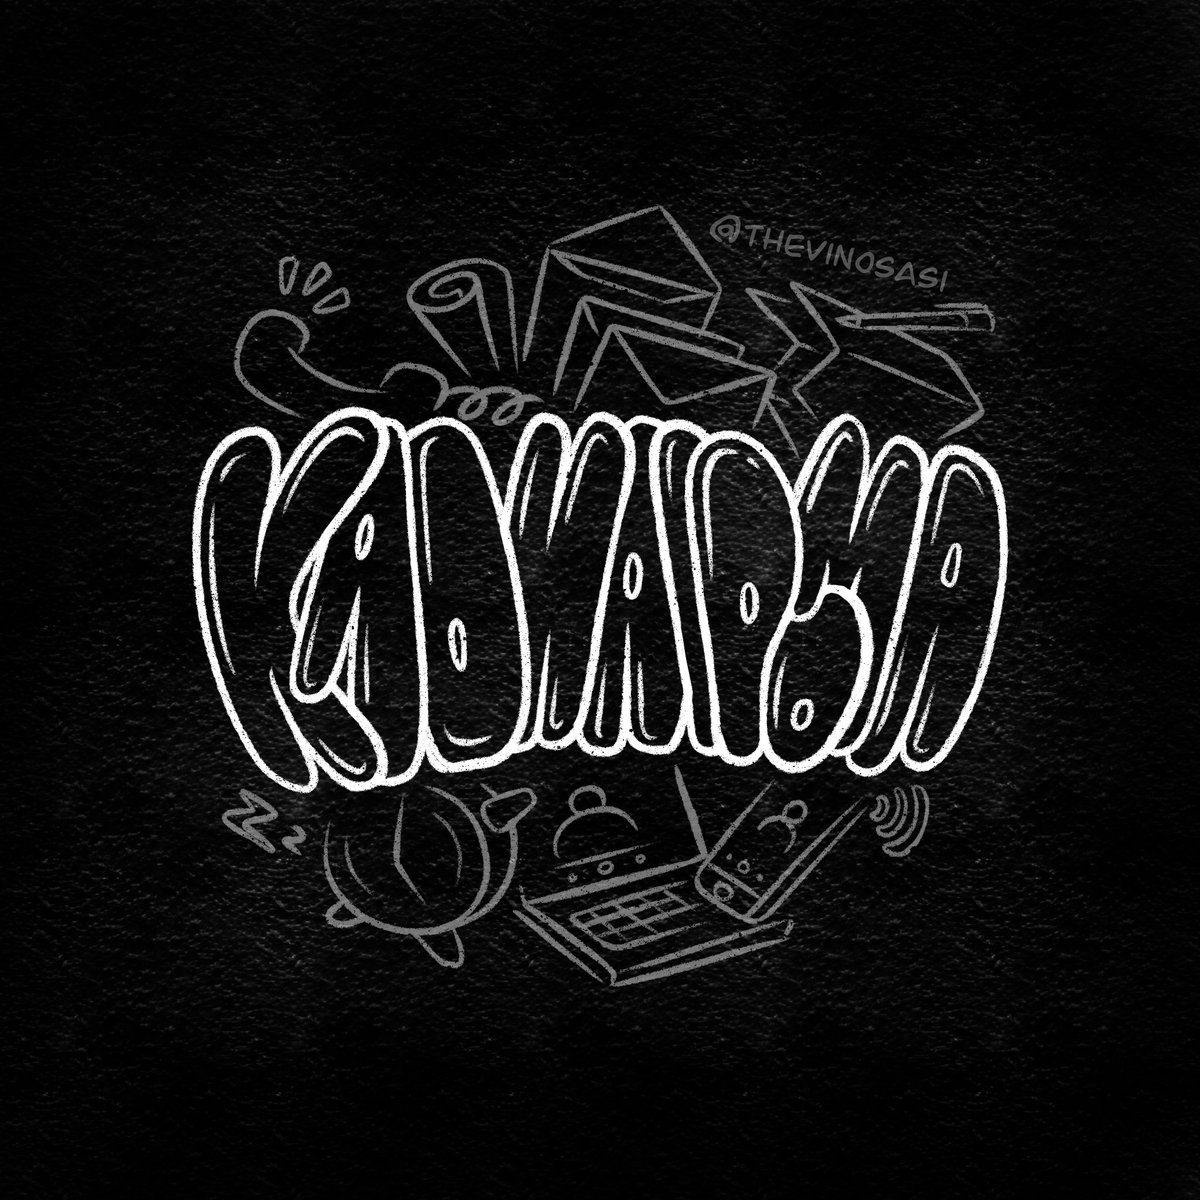 Kadhaipoma #doodle #lettering #tamilsong #kadhaipoma #tamillyrics #OhMyKadavule #chennaiartist #vinosasipic.twitter.com/Y6IQ9uOaRY